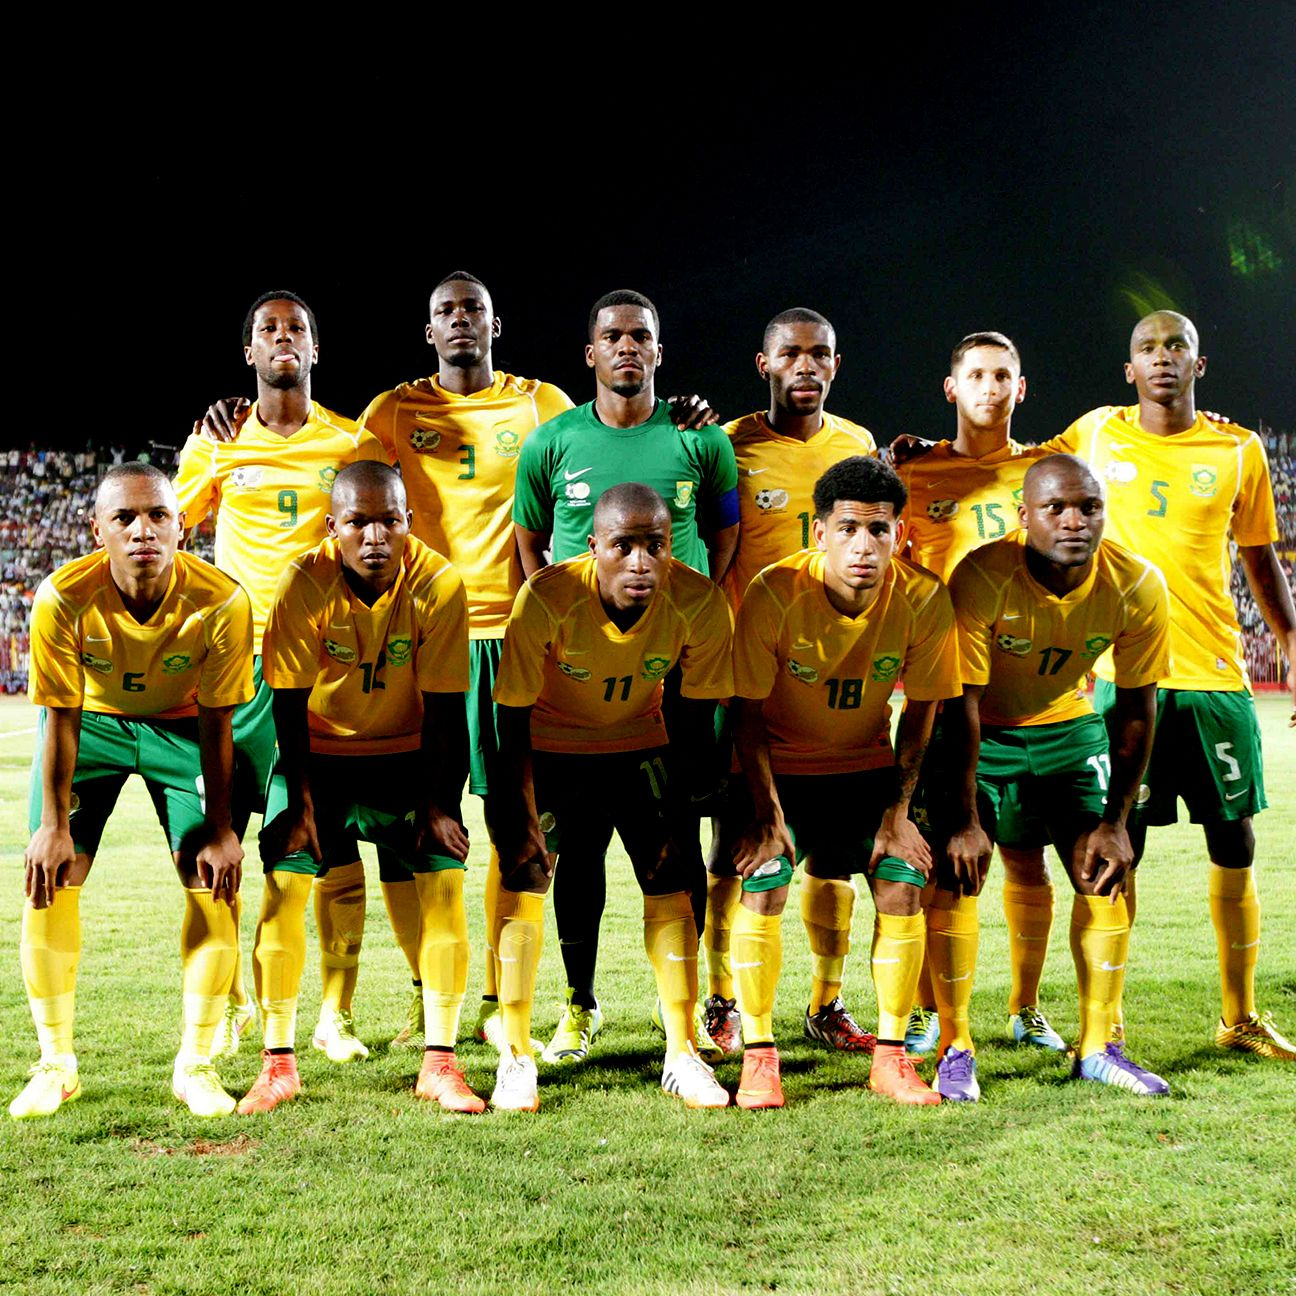 South Africa's ANC qualifying started with a 3-0 victory over Sudan.